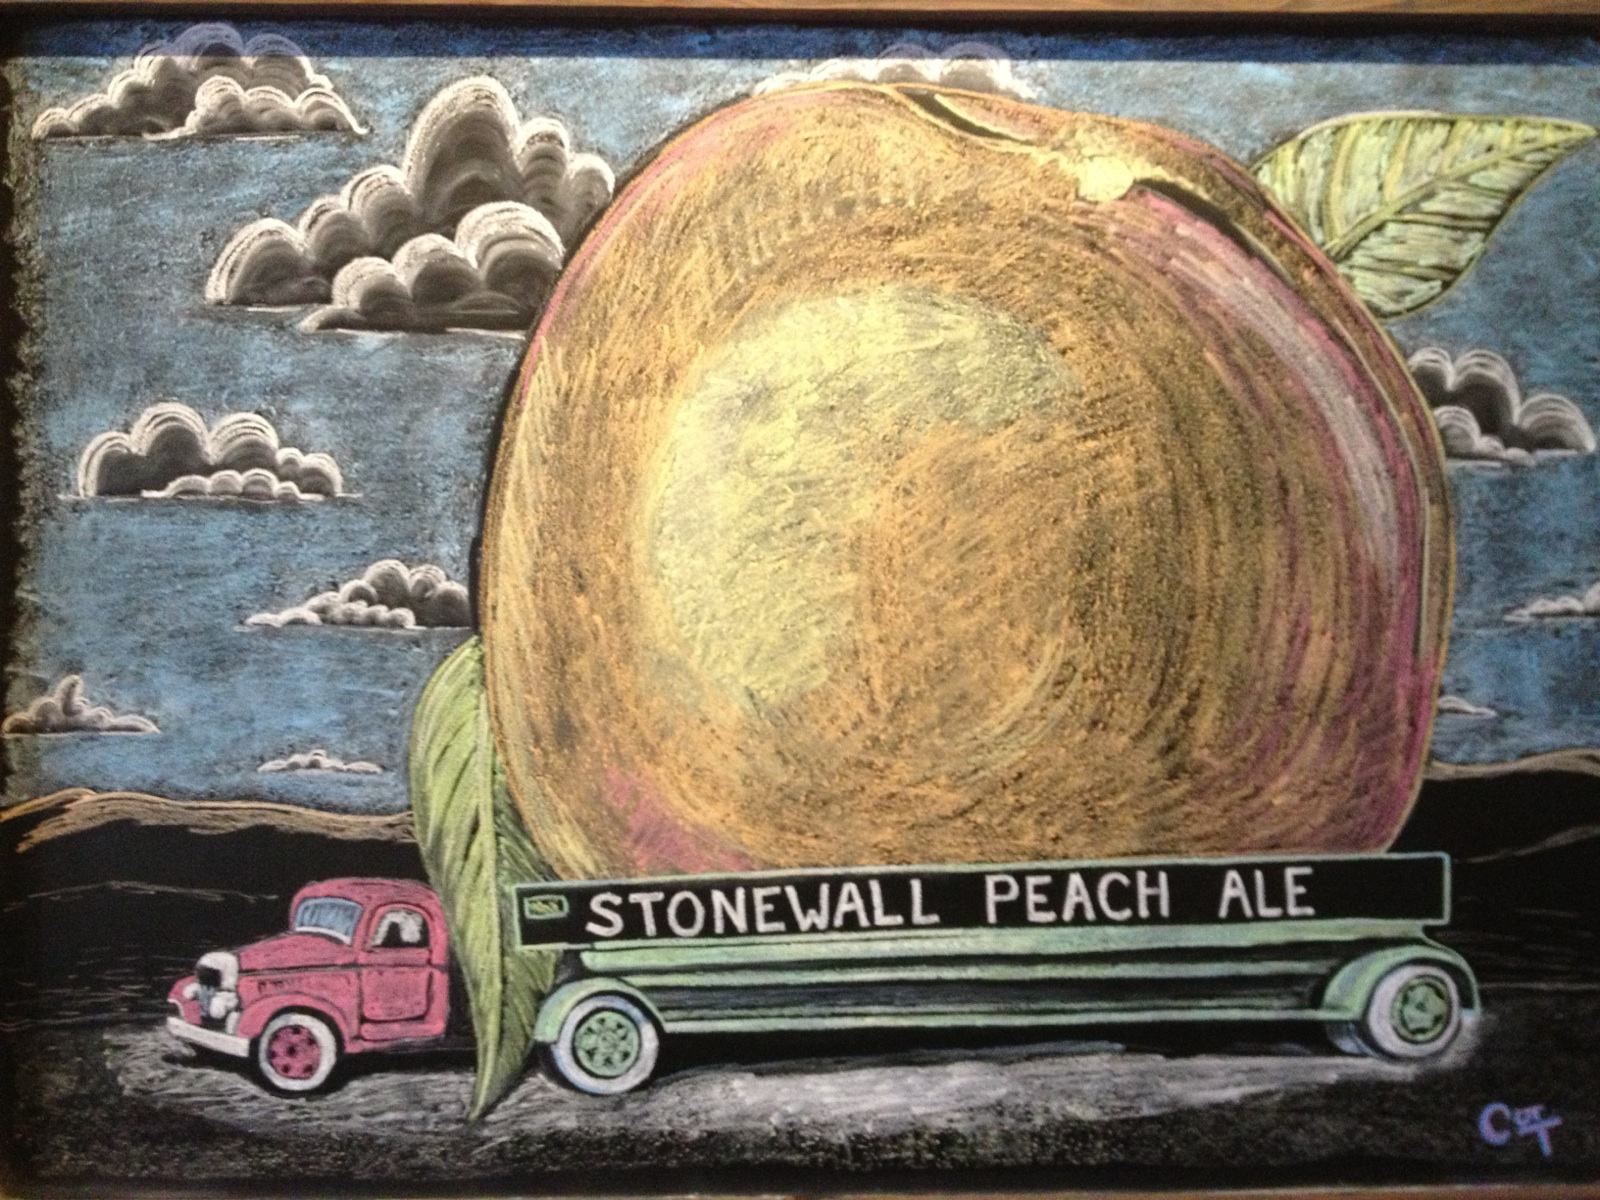 Stonewall Peach Ale - a summertime favorite